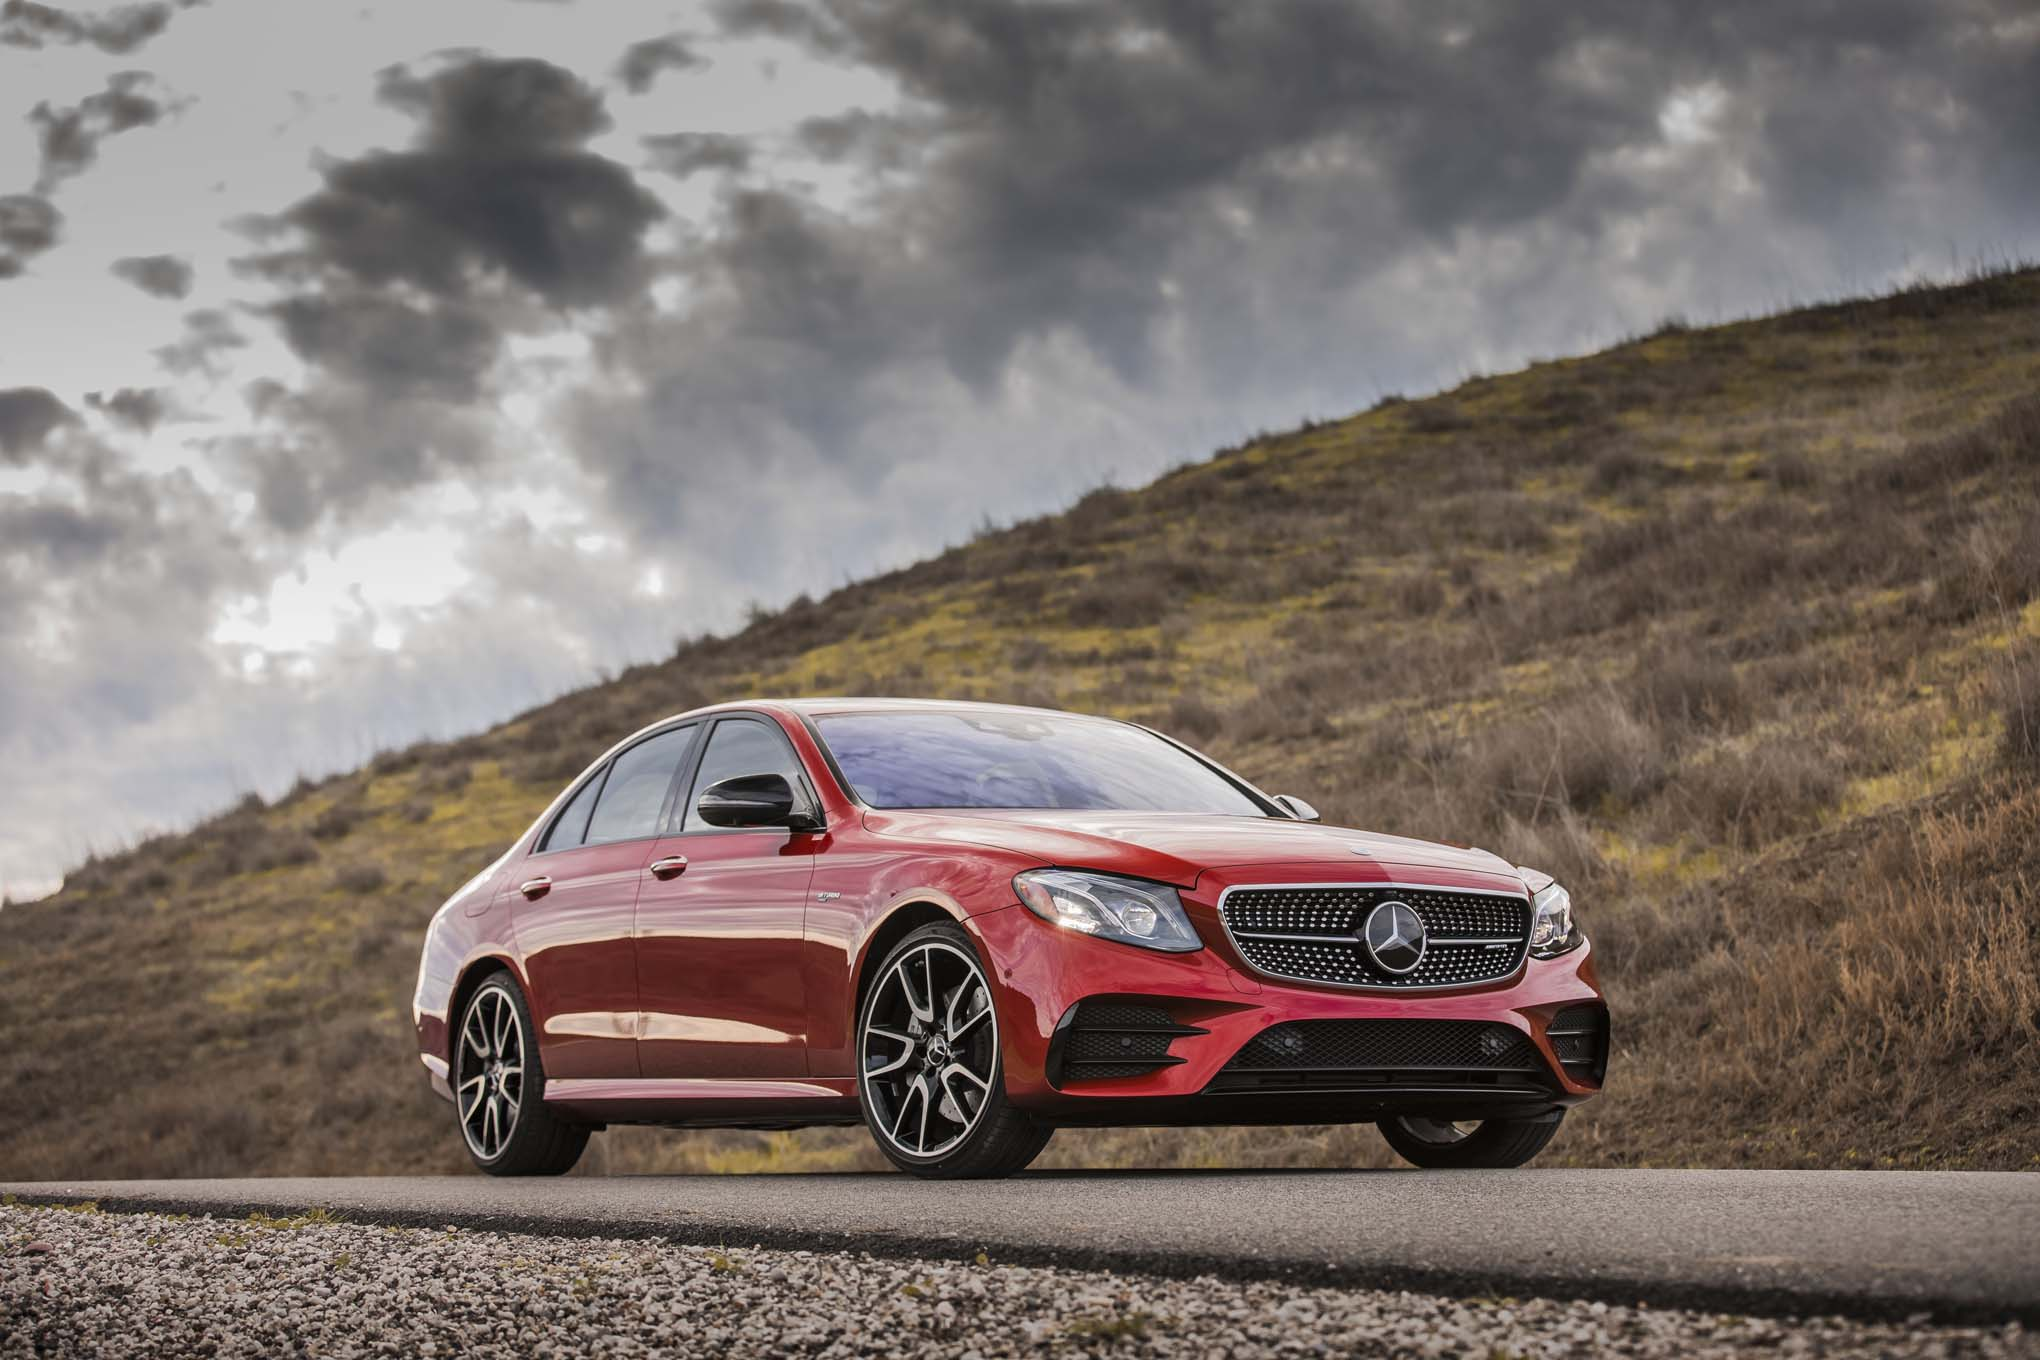 2017 Mercedes Amg E43 Sedan First Drive And Review Automobile Magazine